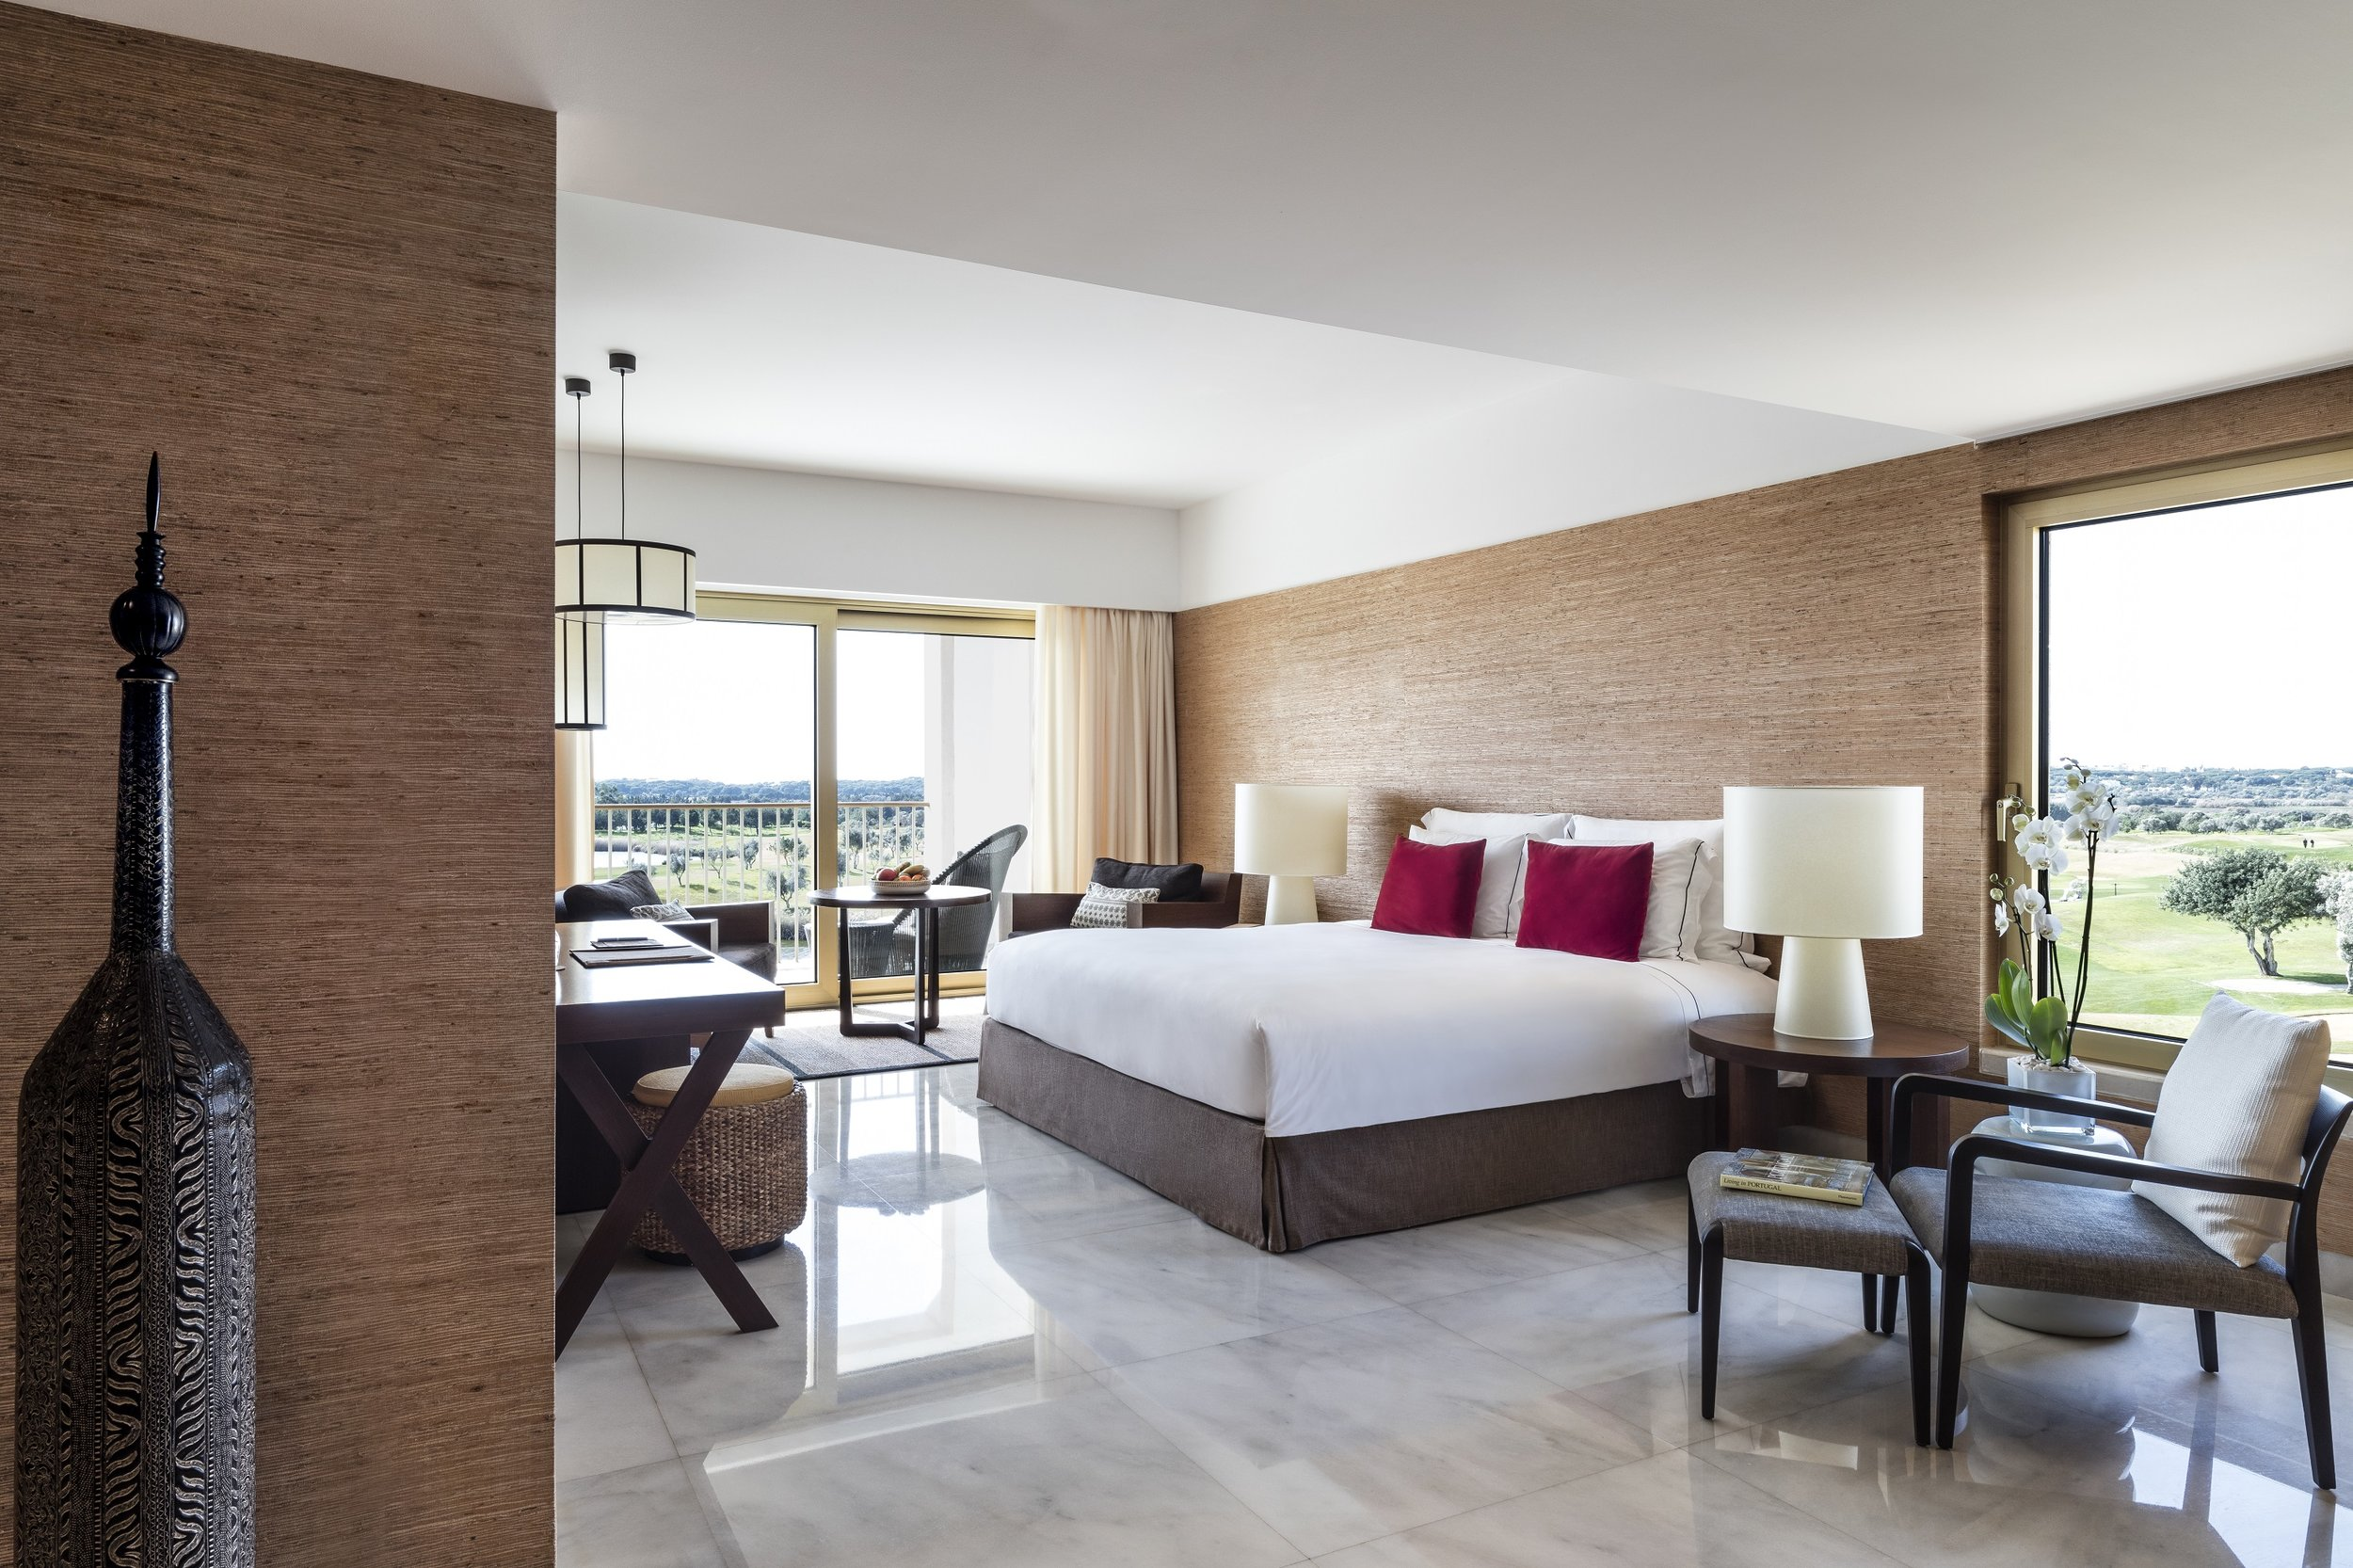 Anantara Vilamoura Algarve Resort- Presidential Suite Bedroom.jpg